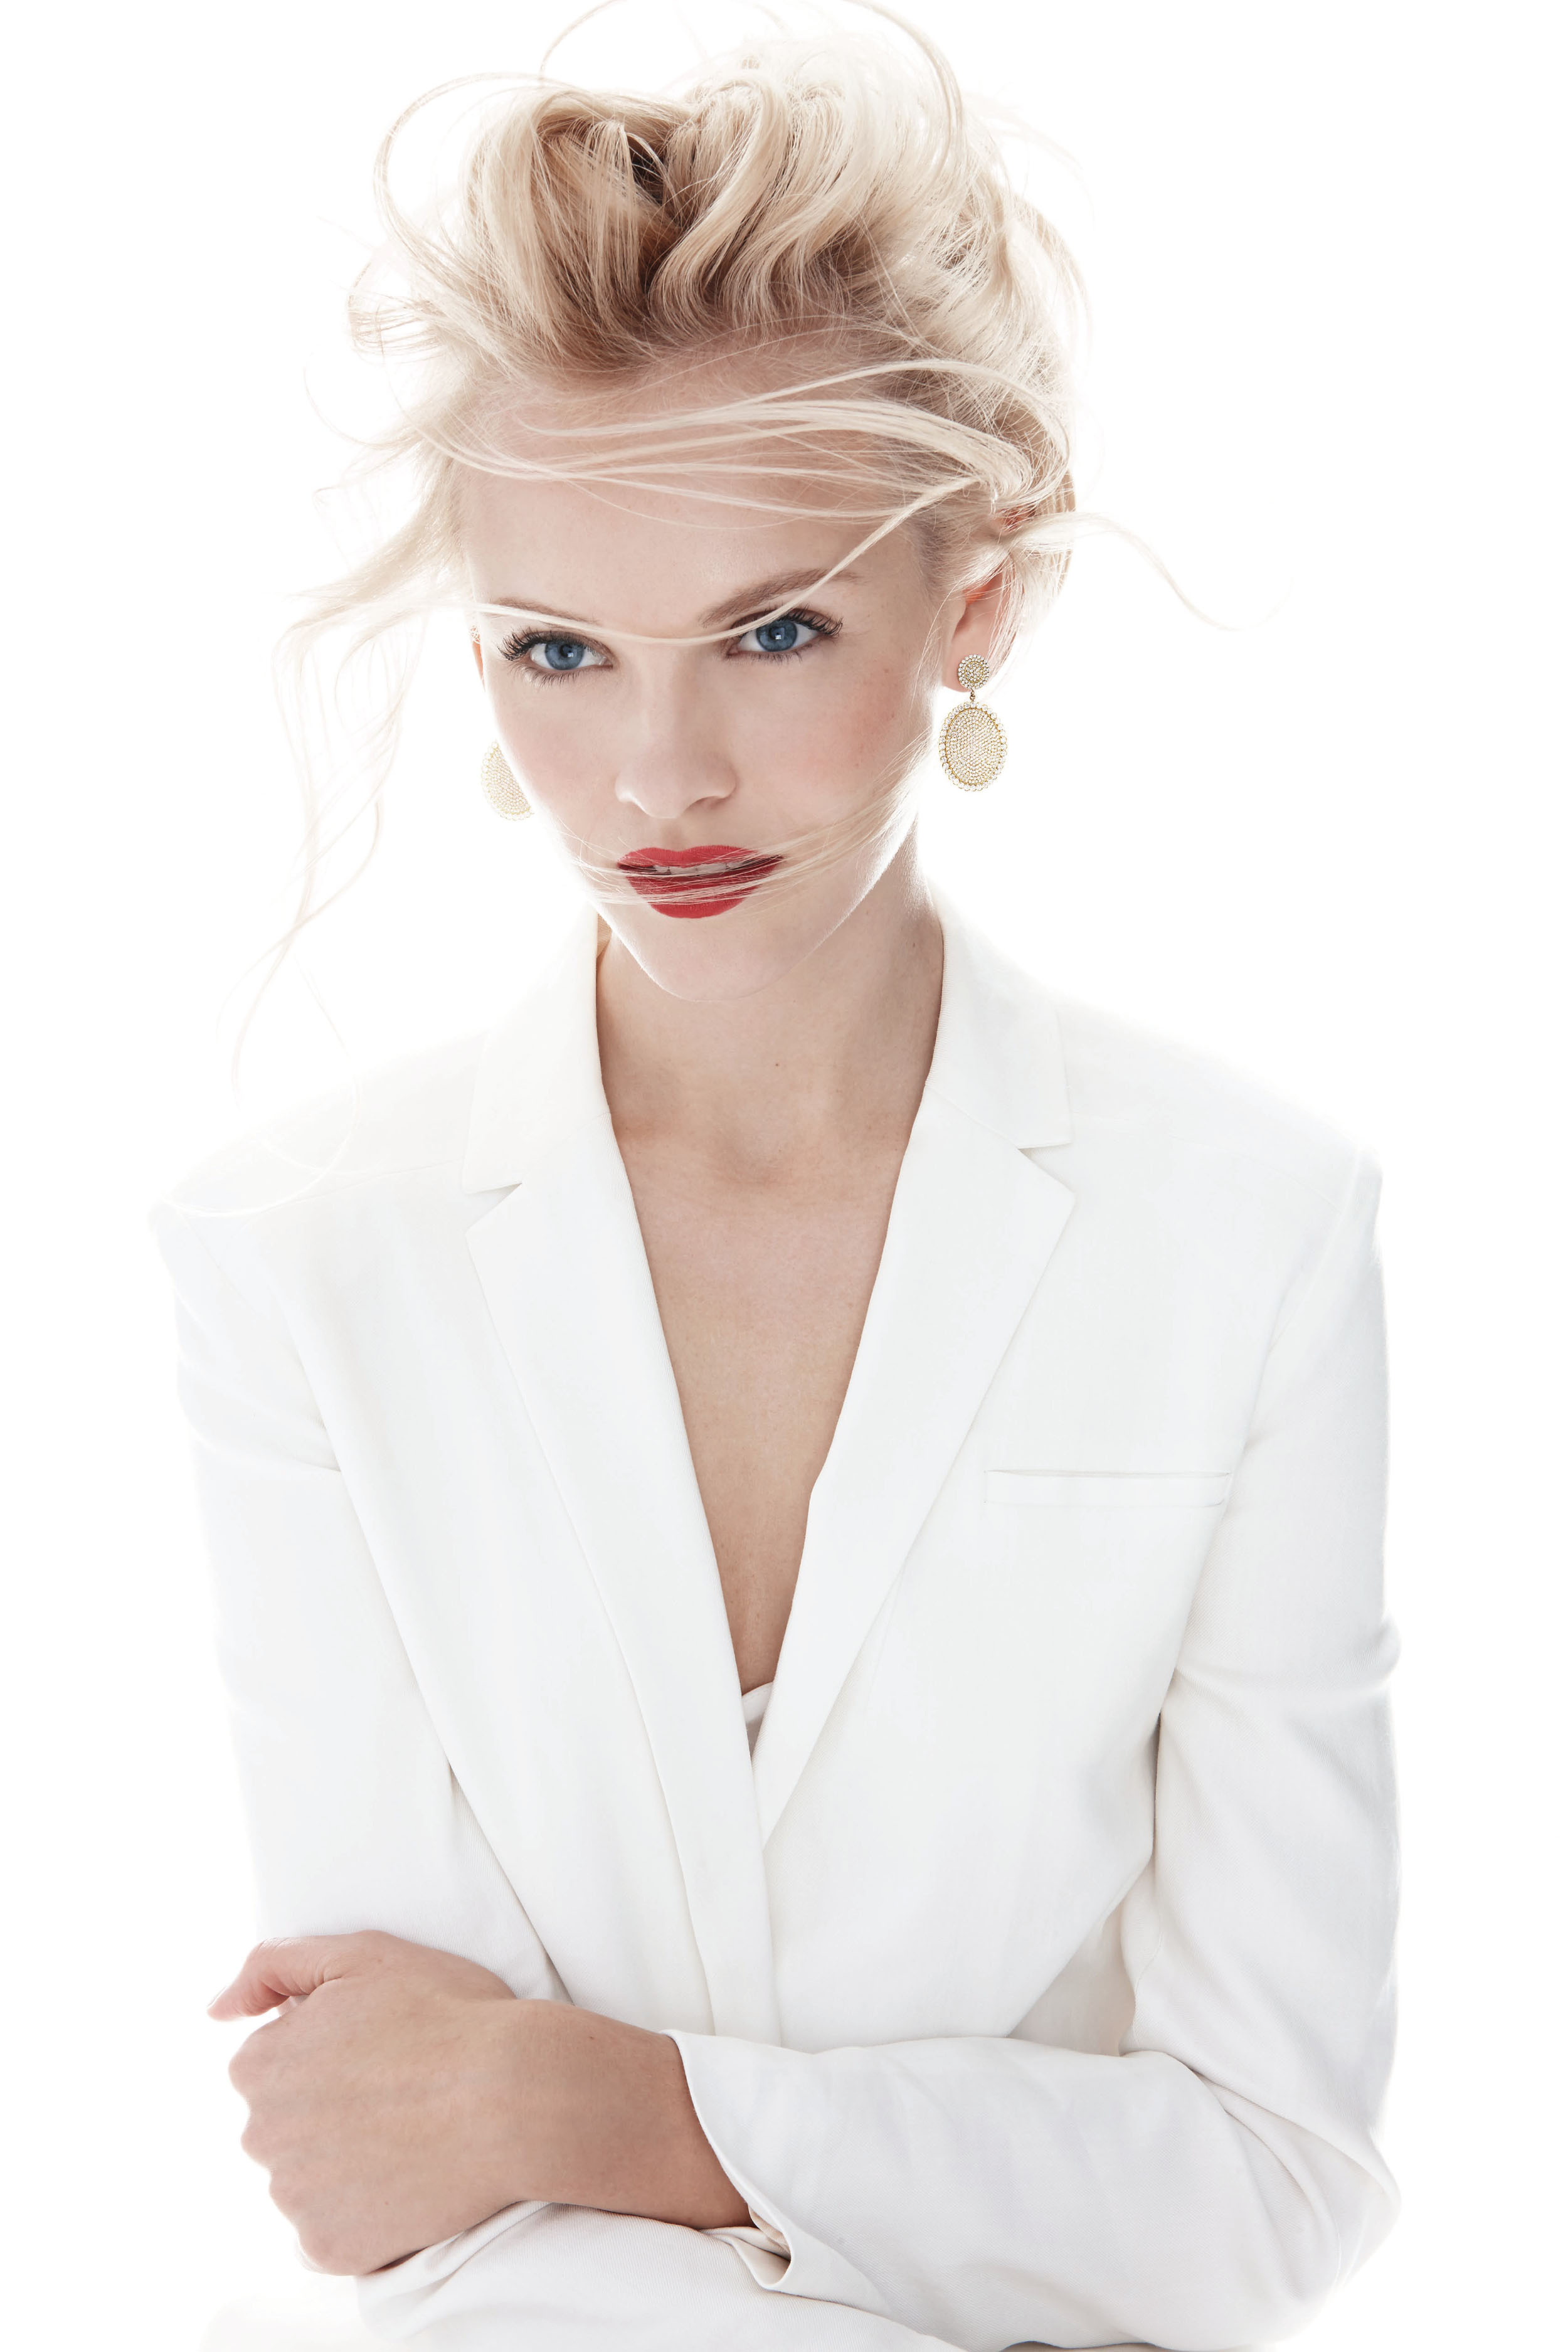 jac-jagaciak-ginta-lapina-by-walter-chin-jeff-stephens-for-neiman-marcus-the-may-book-2014-9